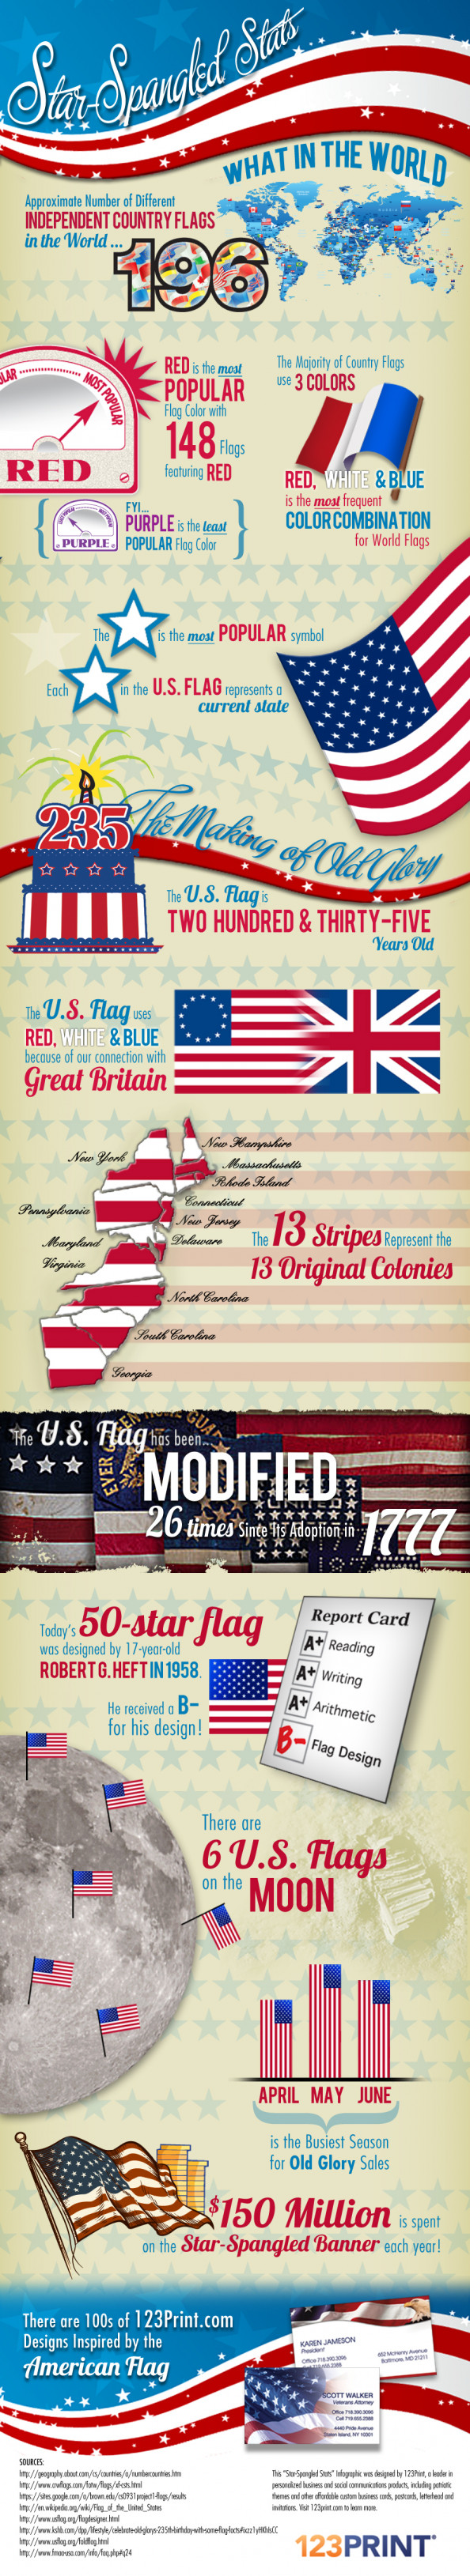 Star-Spangled Stats Infographic